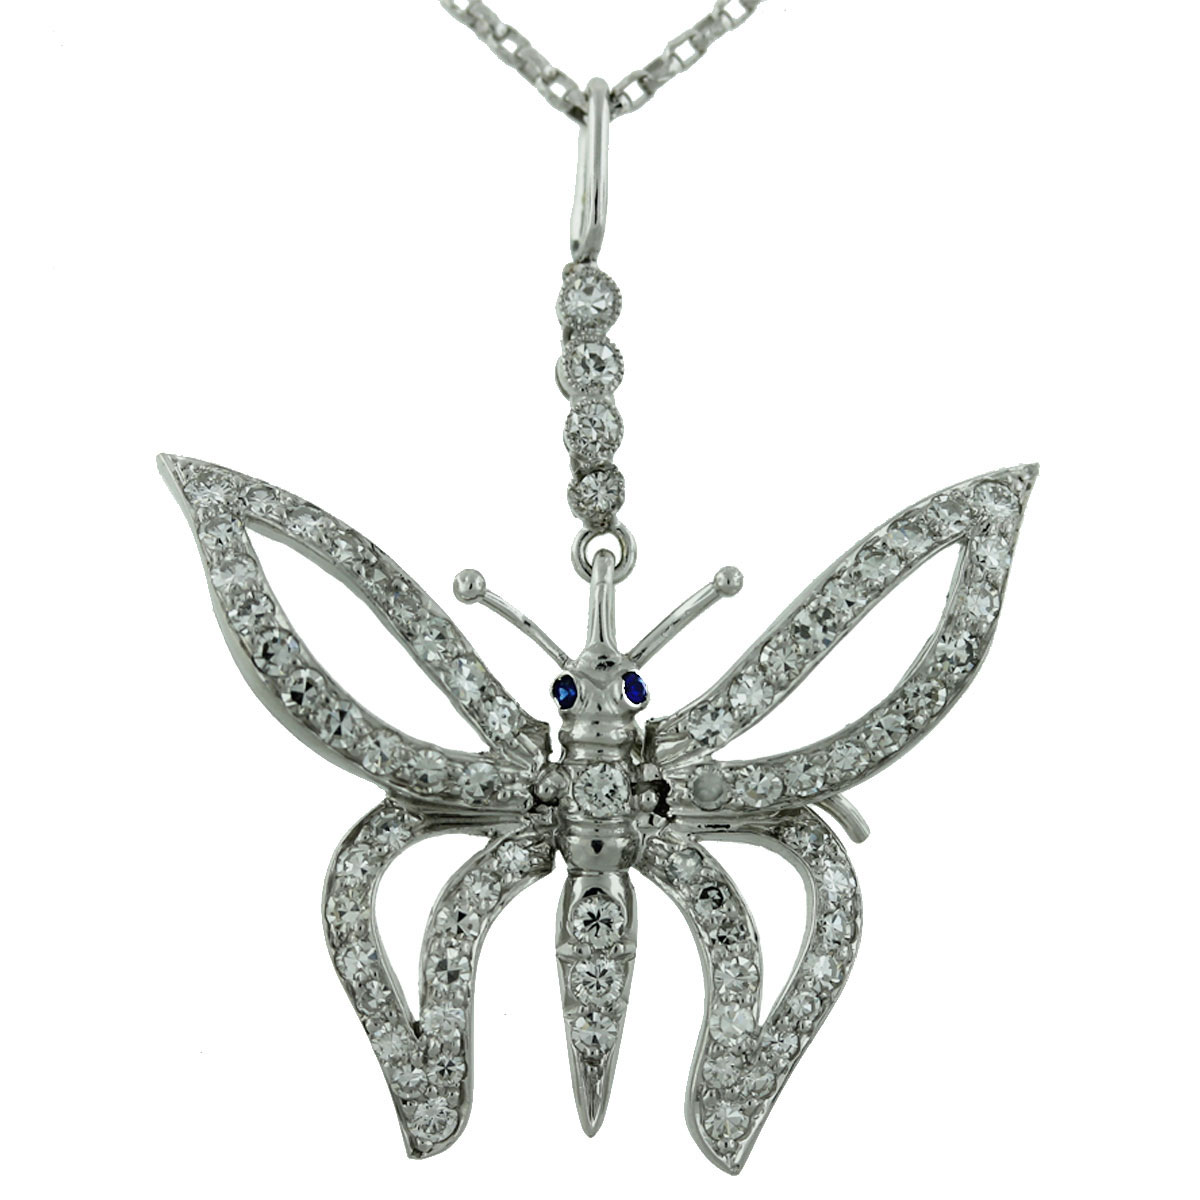 18Kt White Gold Diamond Butterfly Pendant w/ Sapphire Eyes